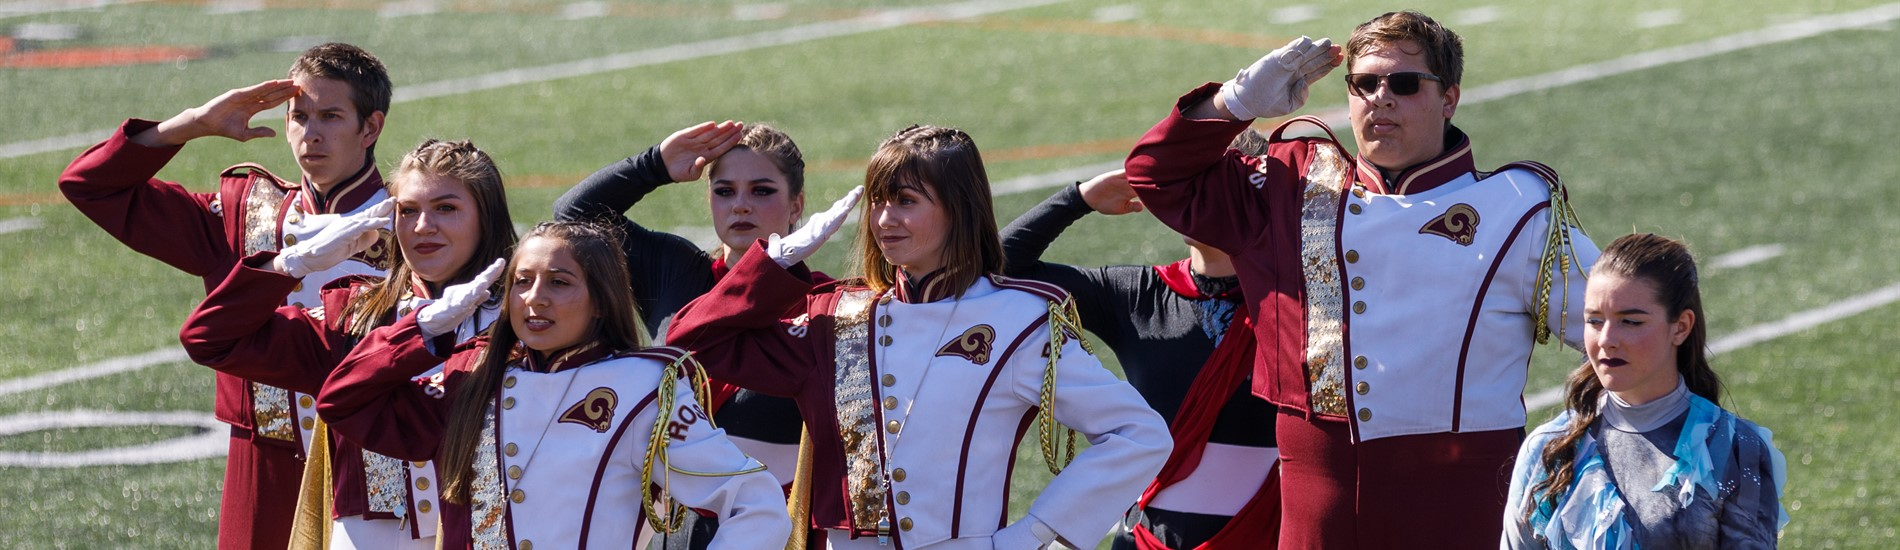 Marching Band Officers